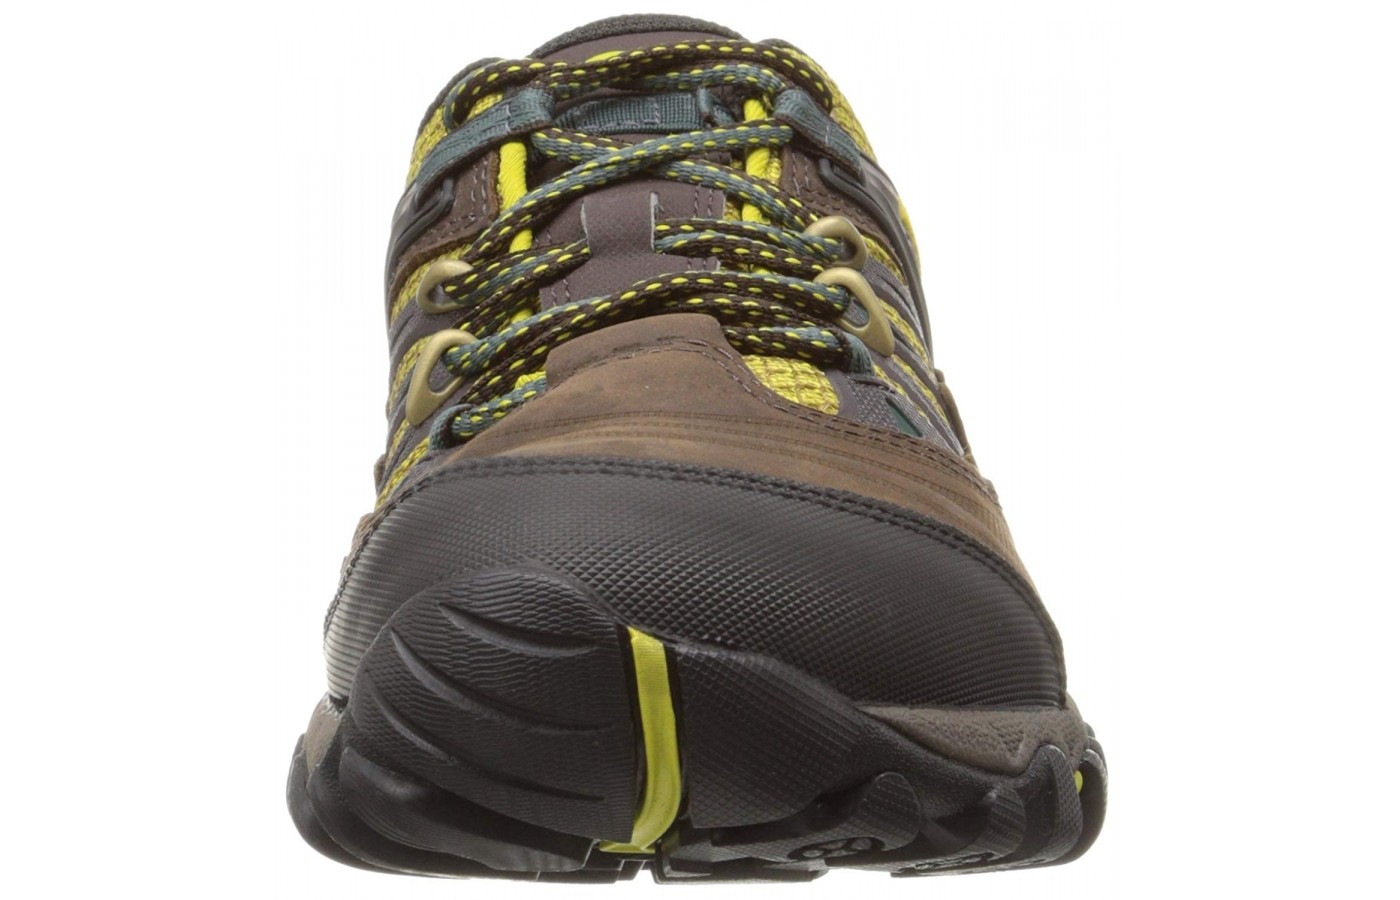 Merrell All Out Blaze features both comfort and stability.